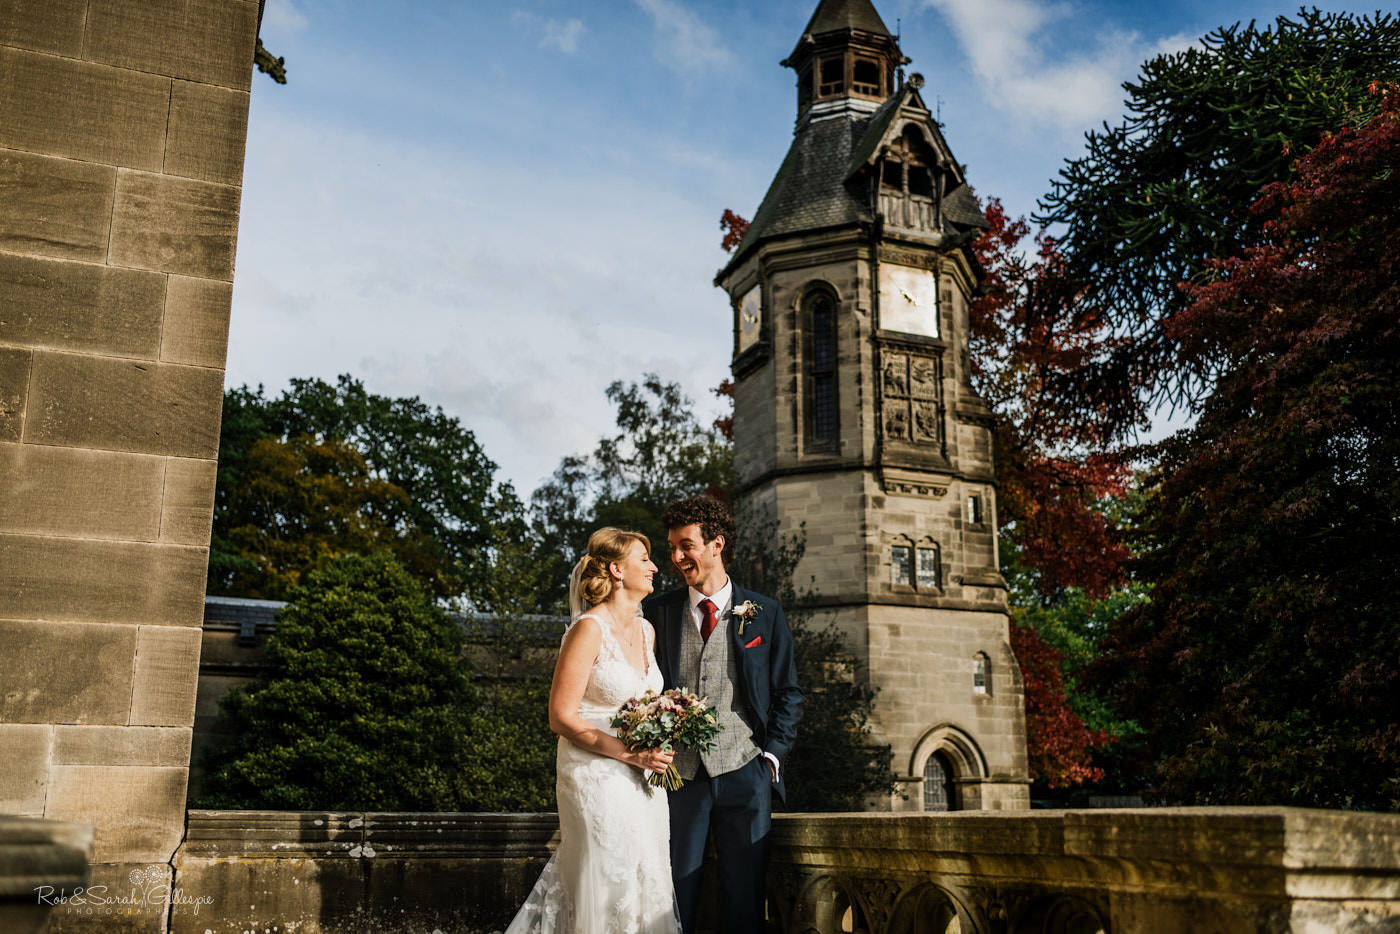 Bride and groom wedding photography at Hampton Manor